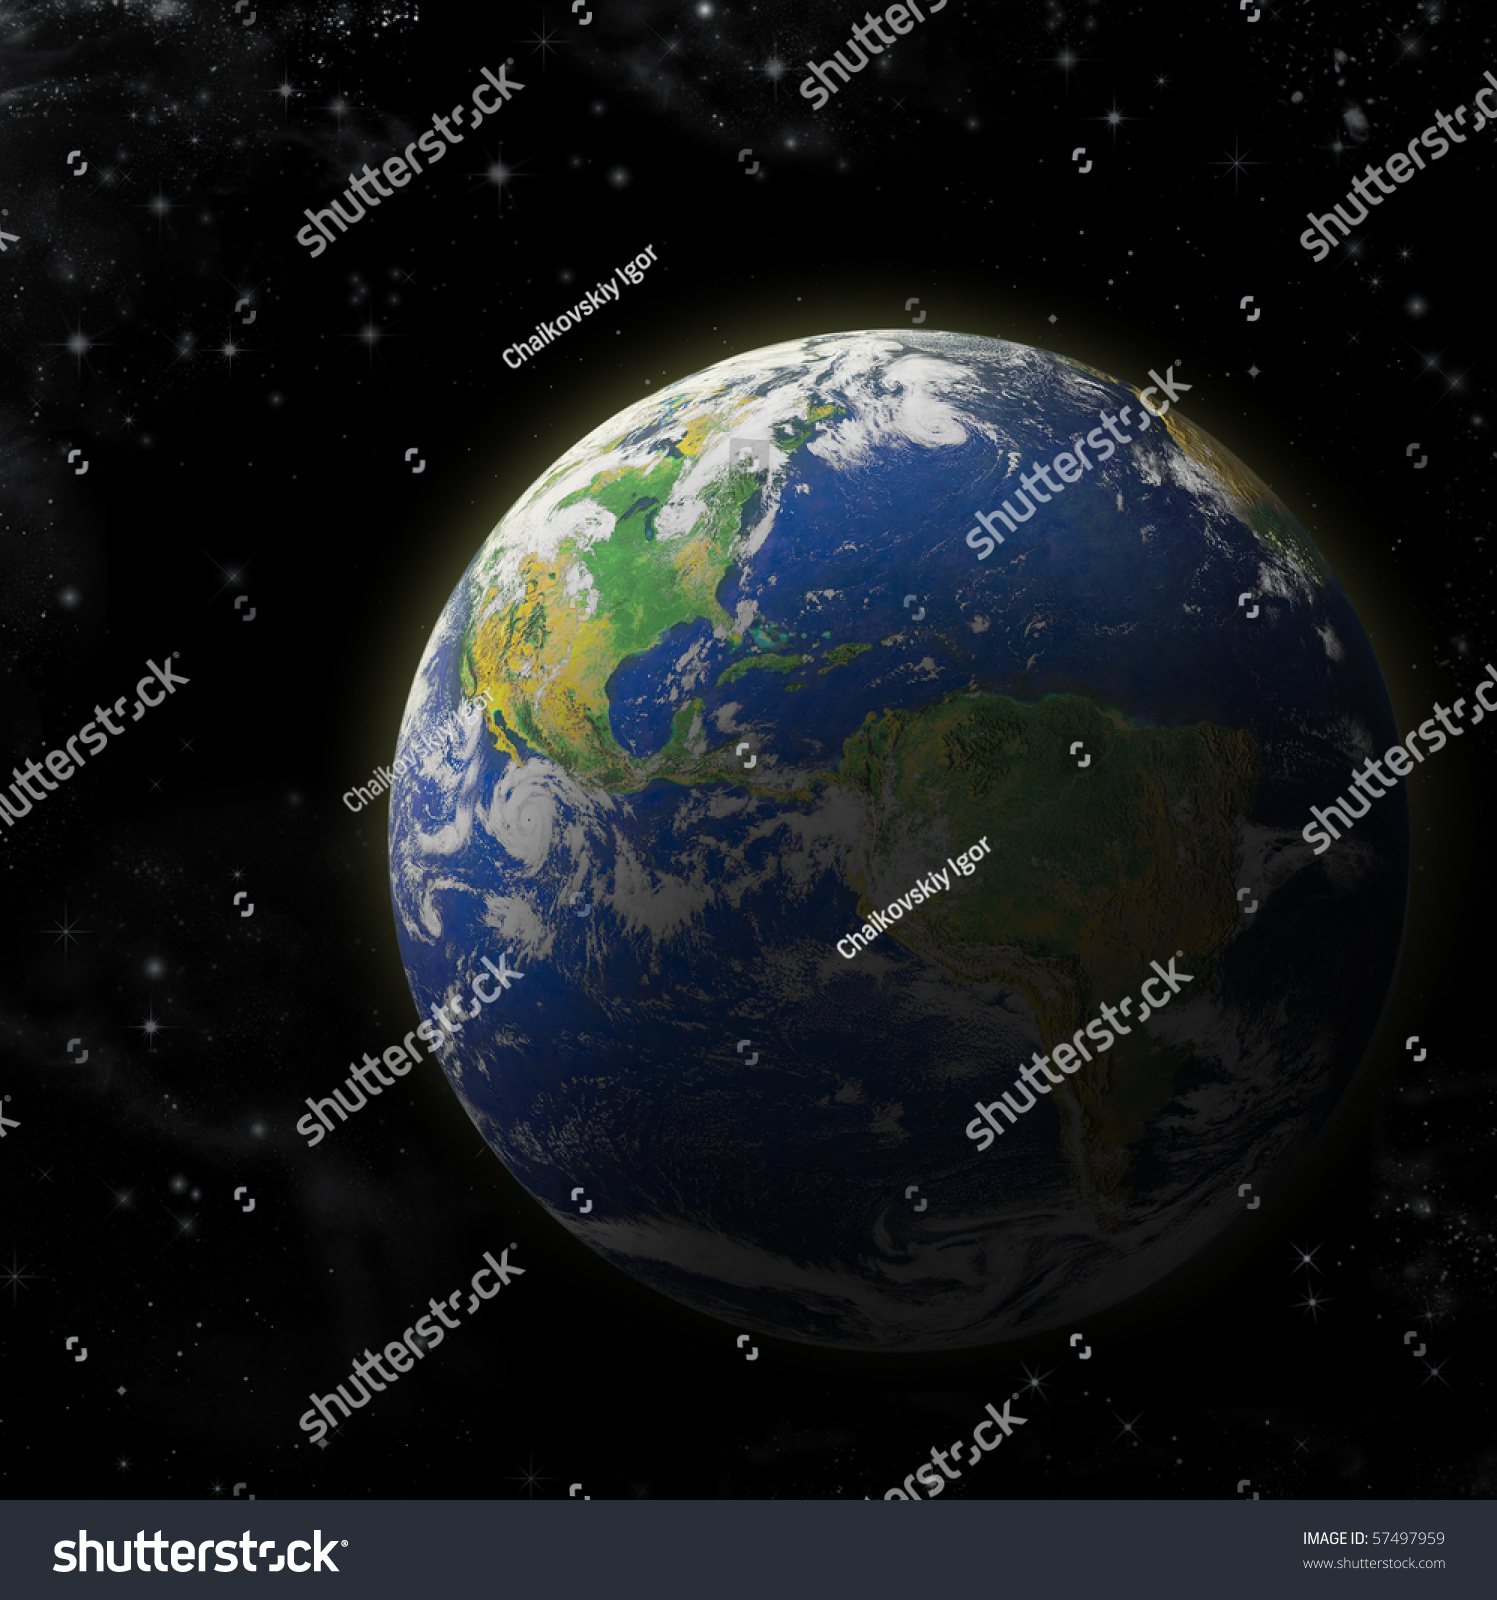 An analysis of the topic of planet earth and the fate of the earth